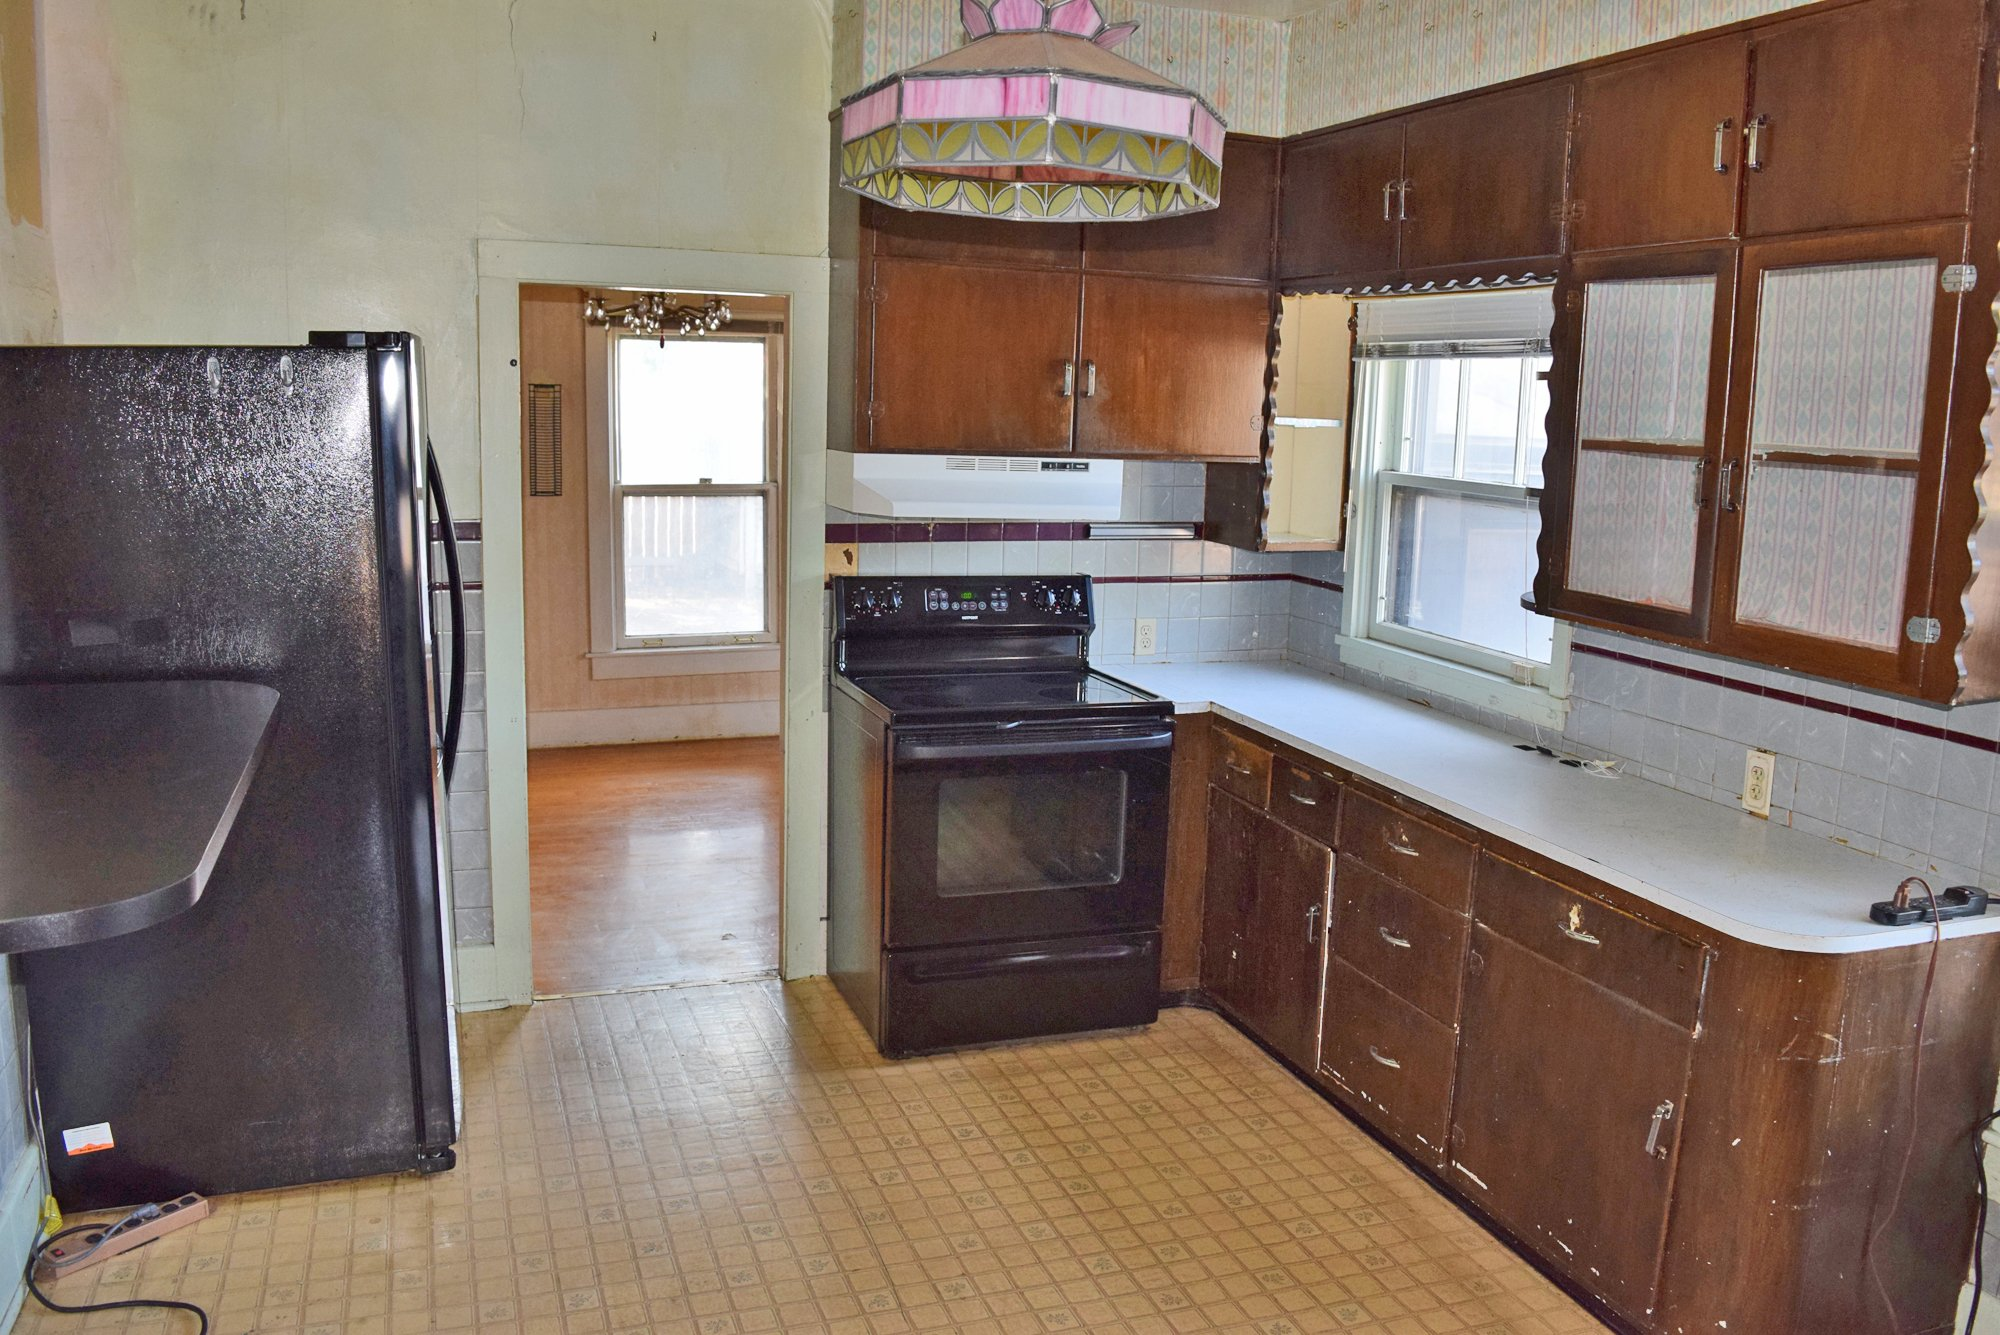 Kitchen with Appliances - 1301 N. 1st St. Montrose, CO 81401 - Atha Team Realty